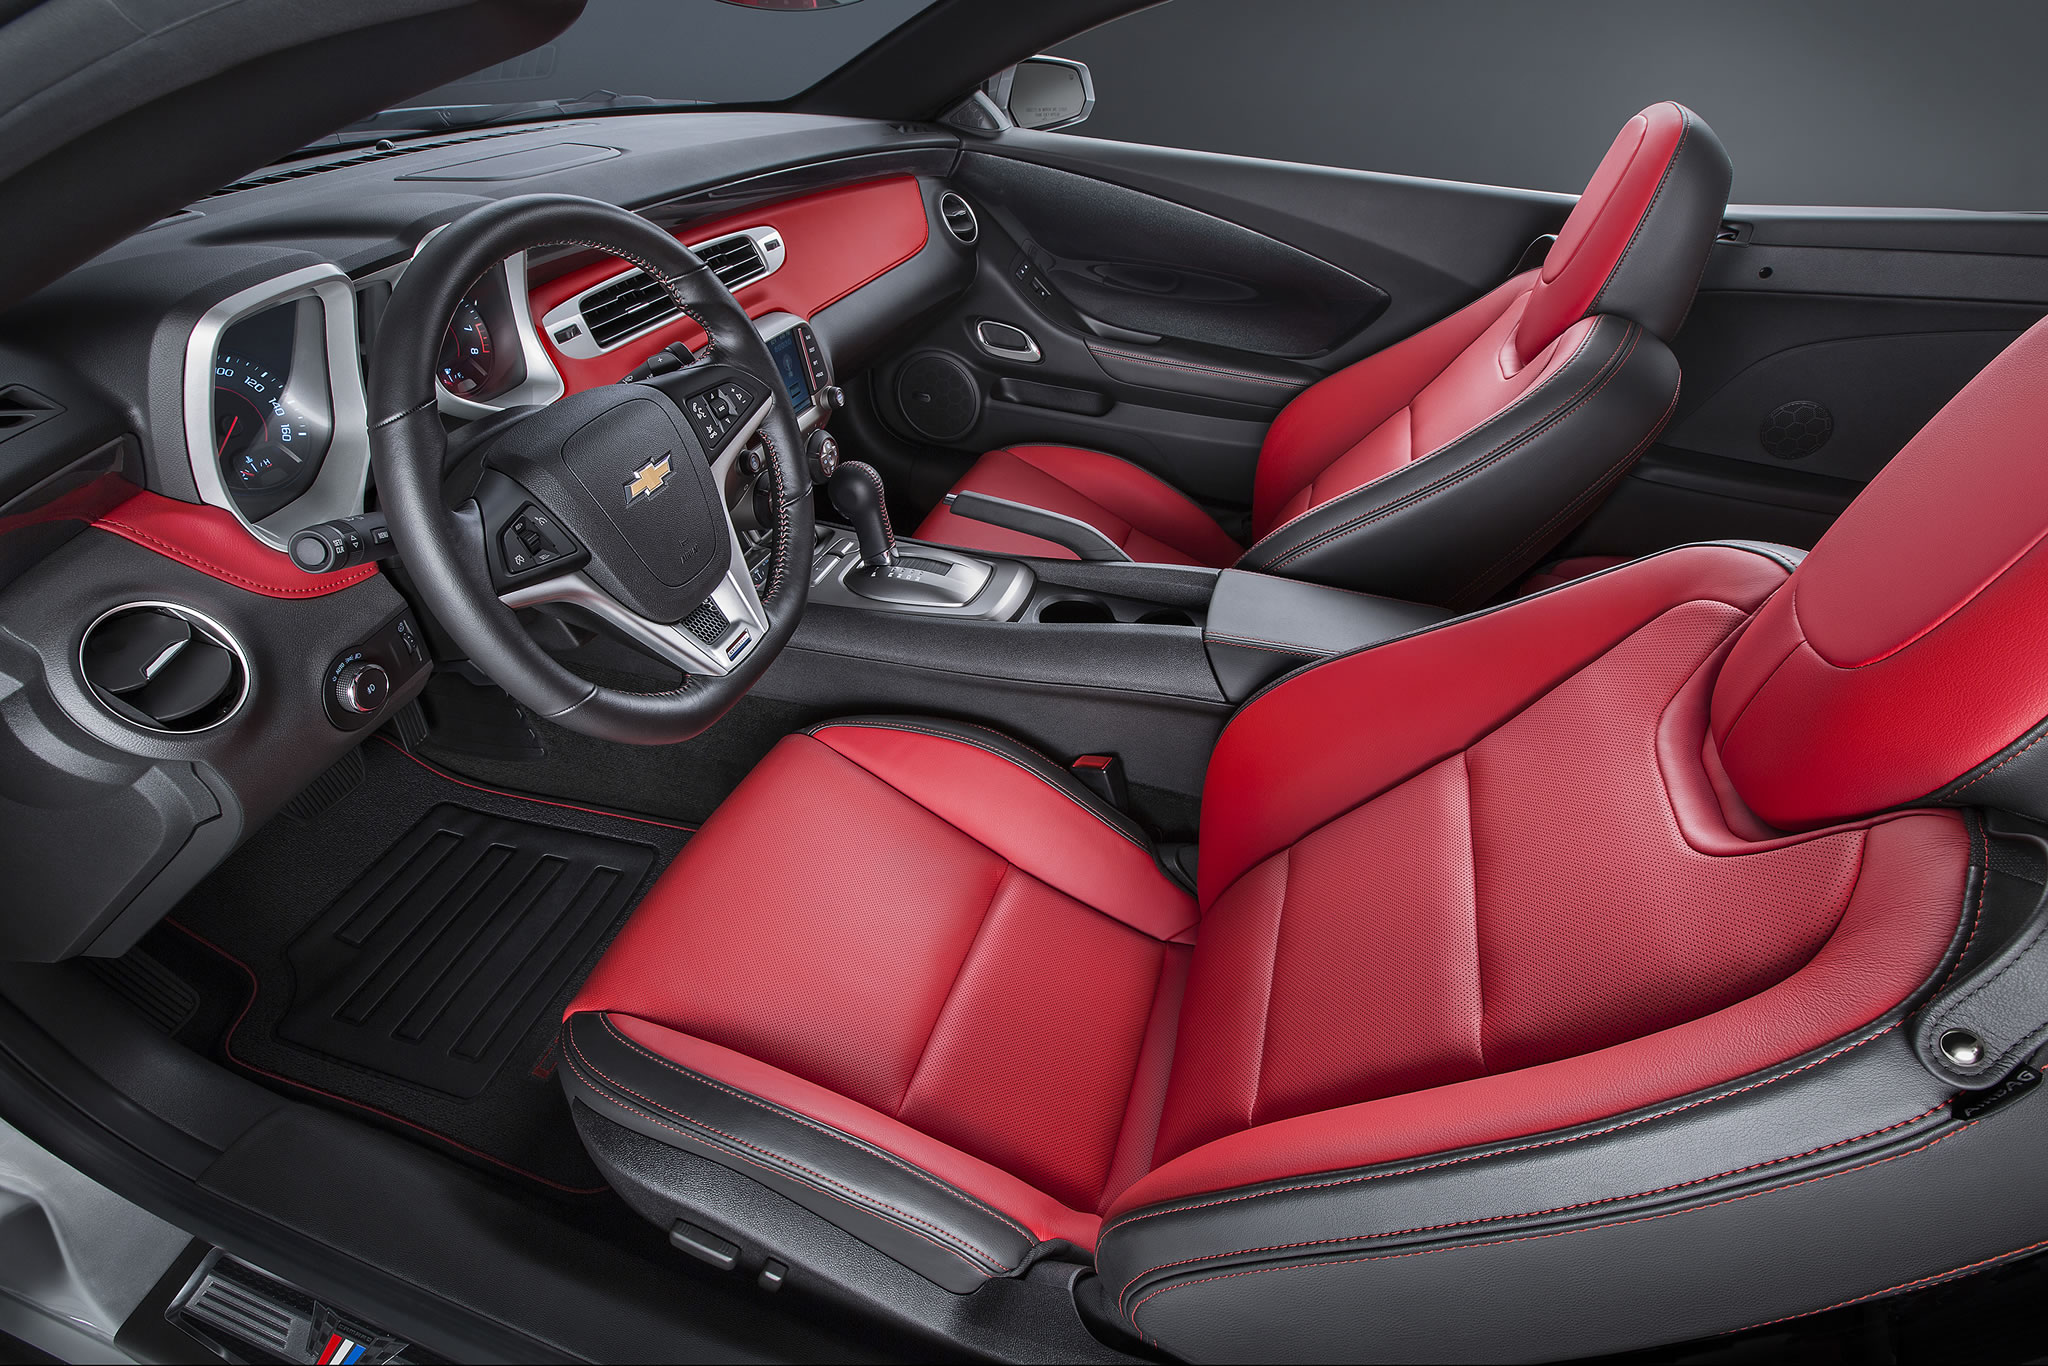 2015 Chevrolet Camaro Commemorative Edition Interior